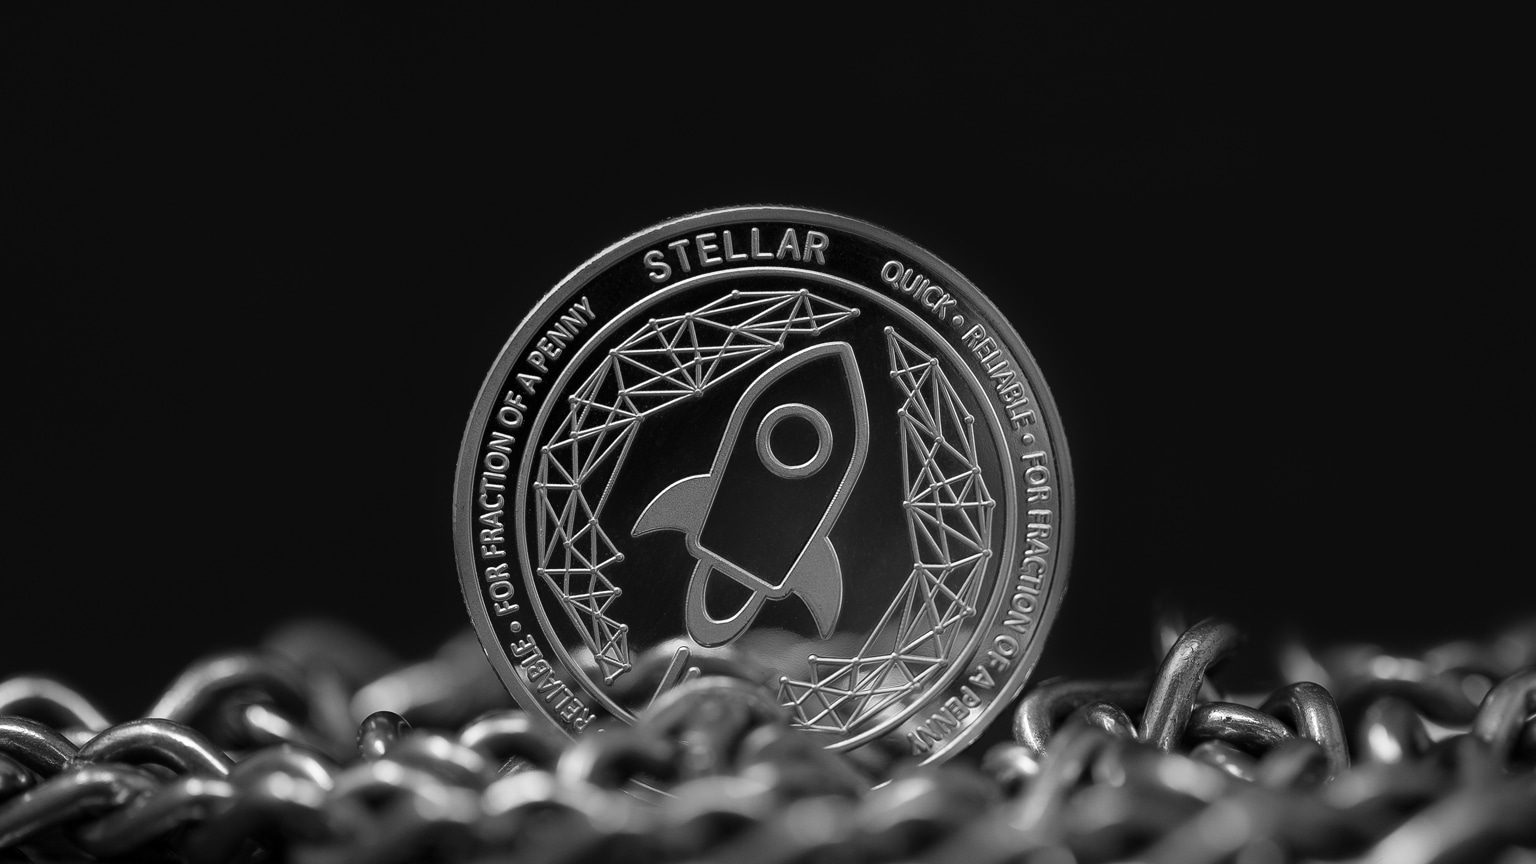 Stellar cryptocurrency physical coin